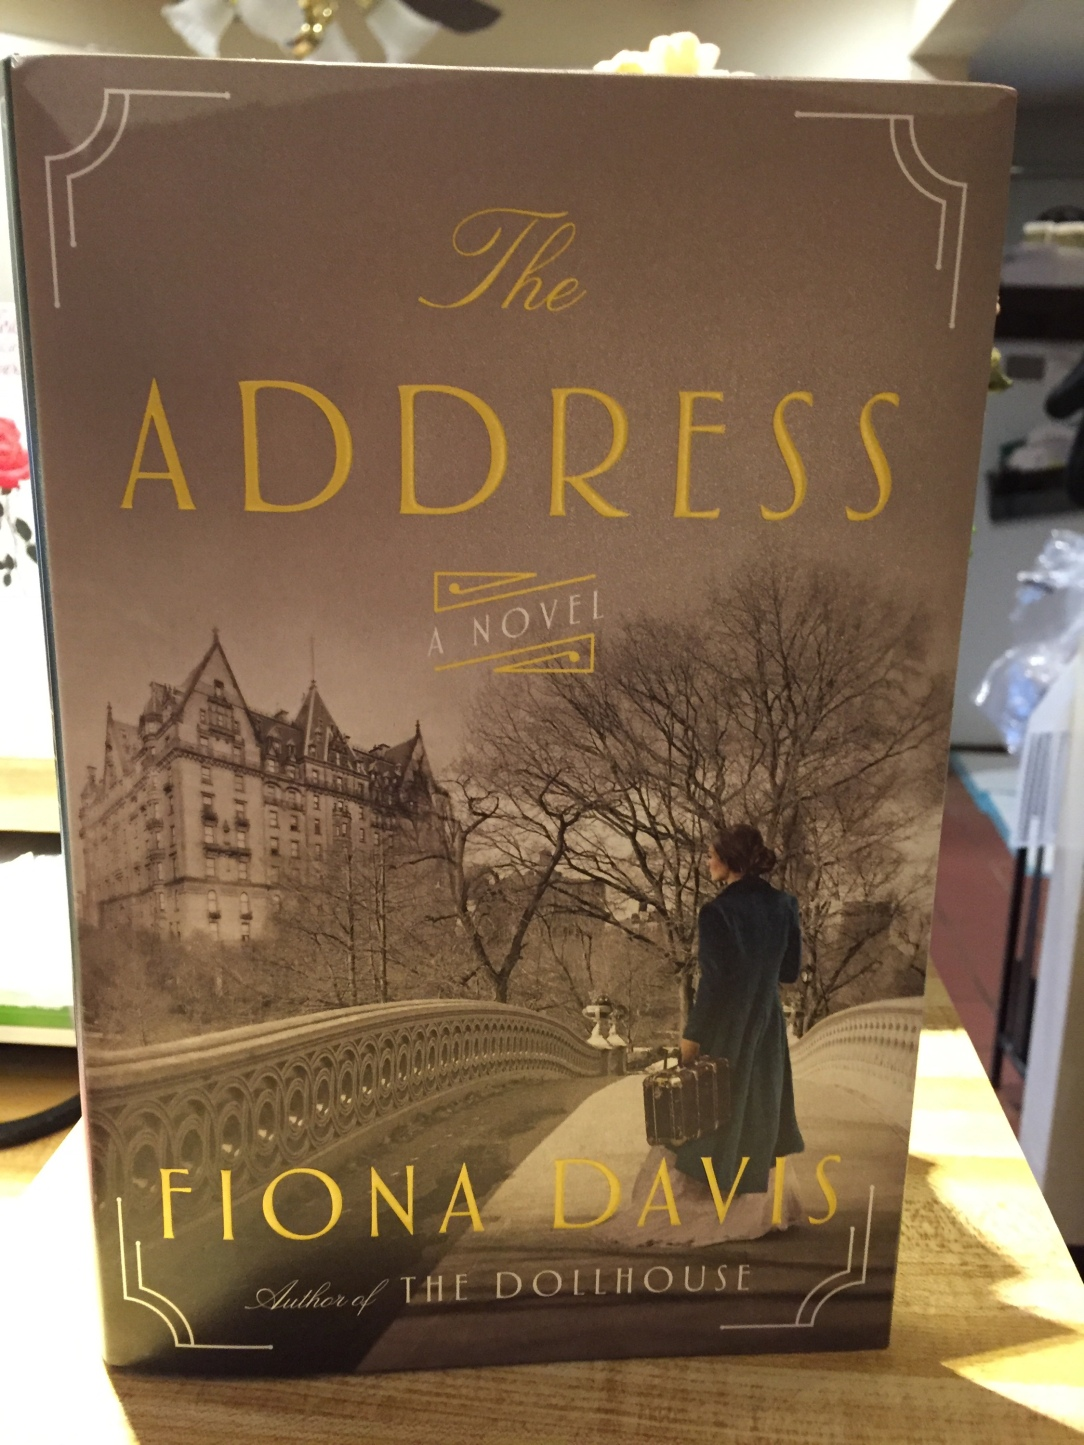 <i>The Address</i> by Fiona Davis